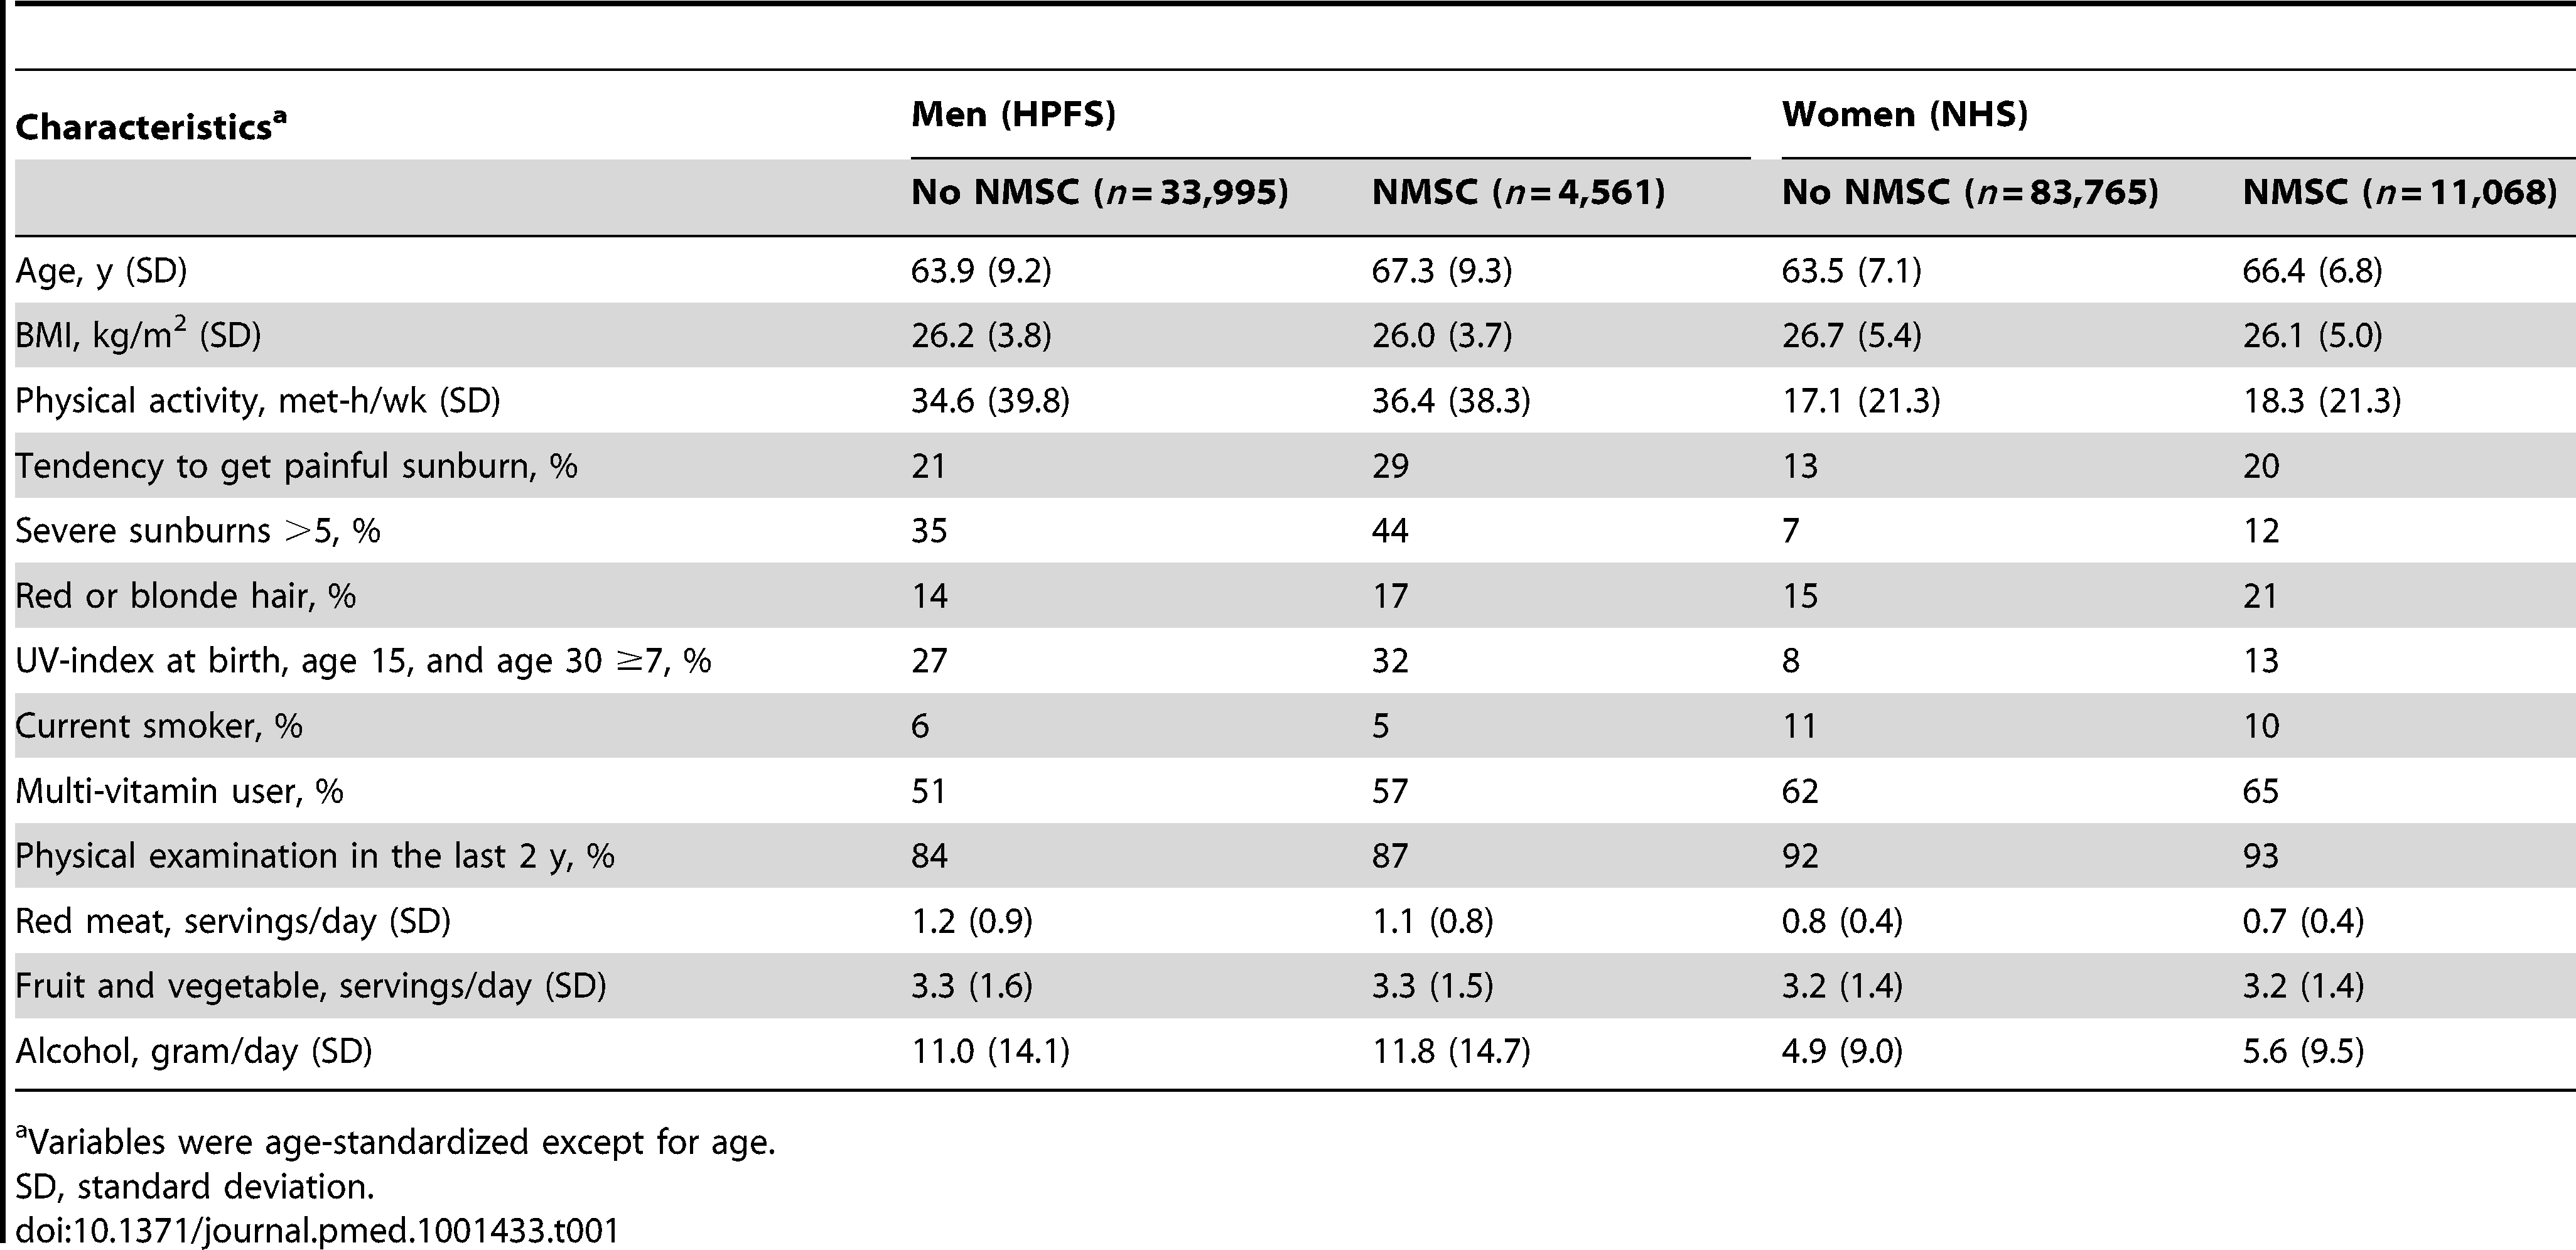 Characteristics according to personal history of non-melanoma skin cancer in 1998.